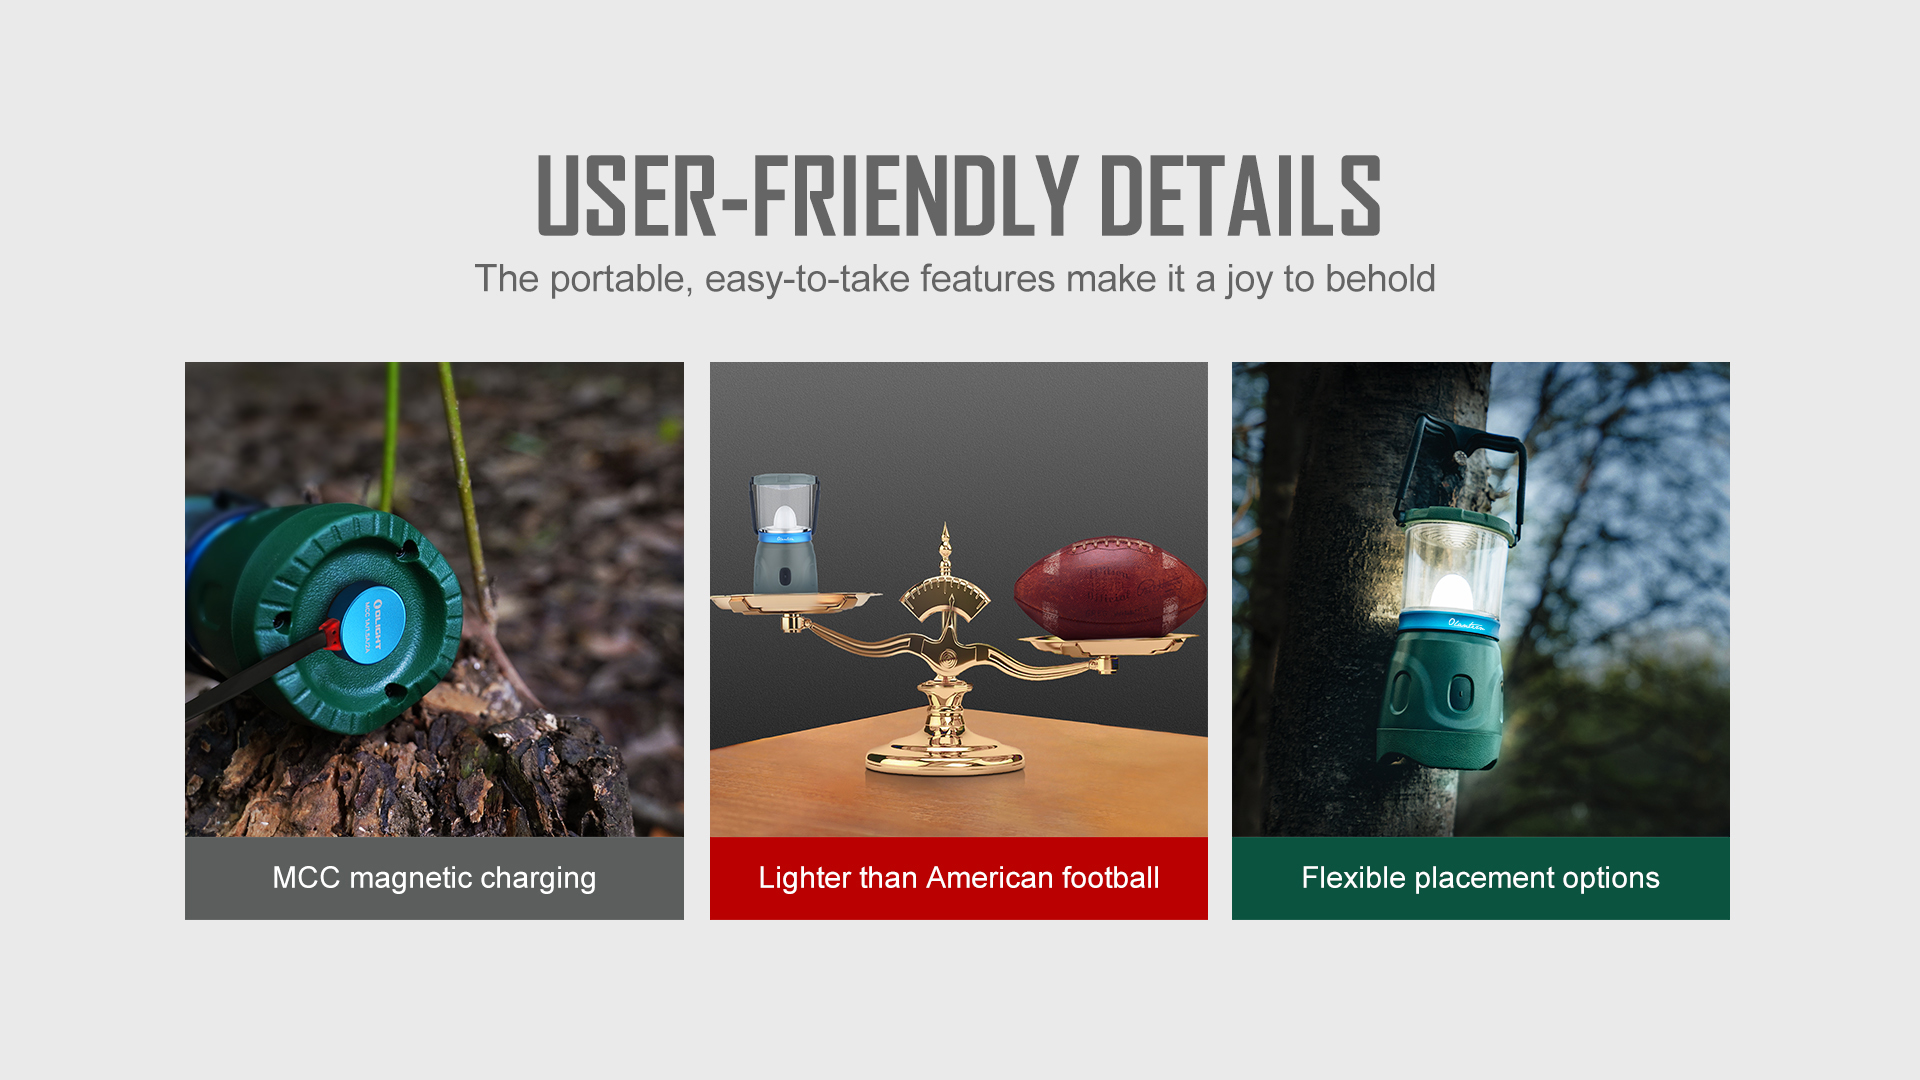 Olantern Rechargeable Camping Lights User Feedback Details